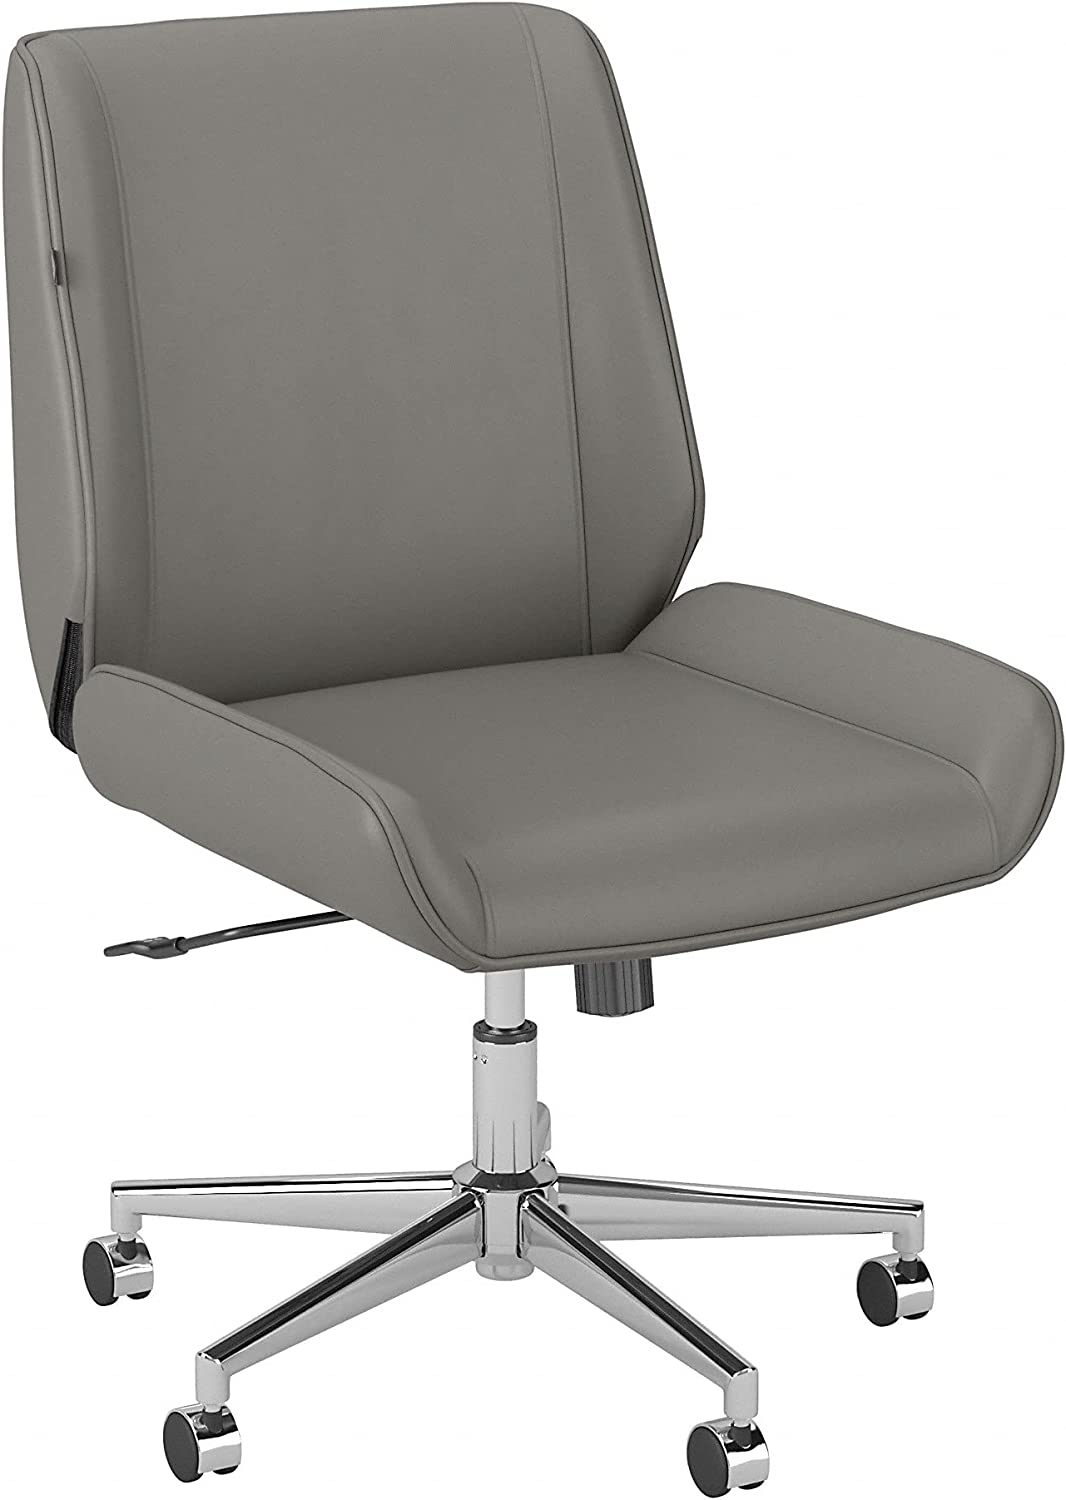 Bush Business Furniture Bay Street Wingback Leather Office Chair, Light Gray